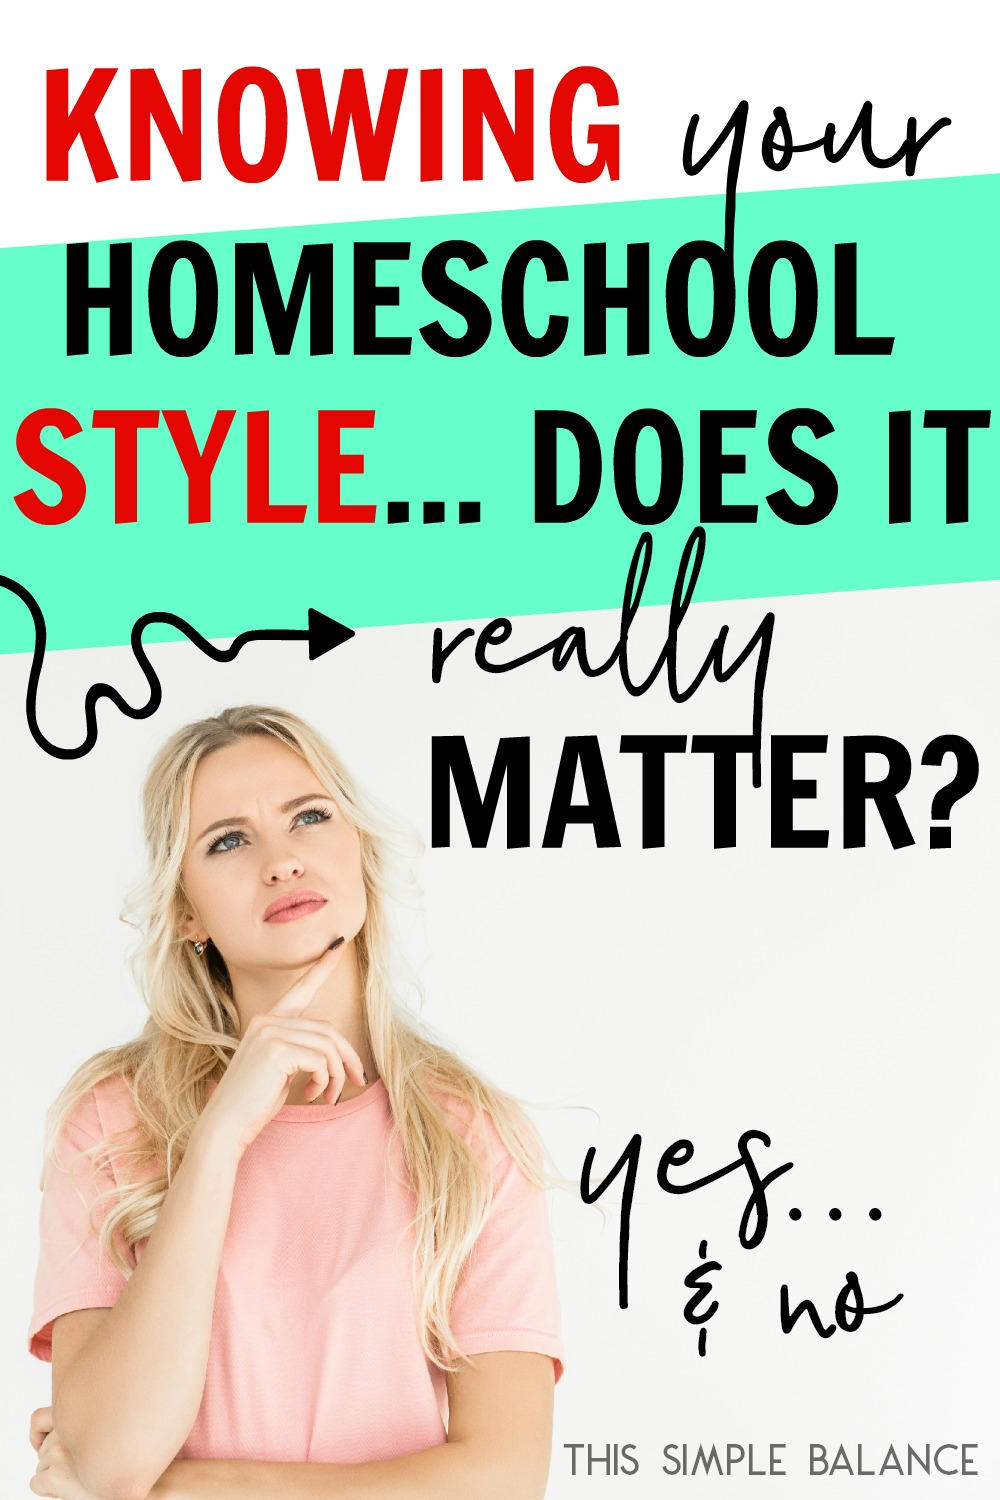 Homeschool Styles: Do they really even matter? What's the point of knowing your homeschool style at all? Does knowing help you in ANY way?